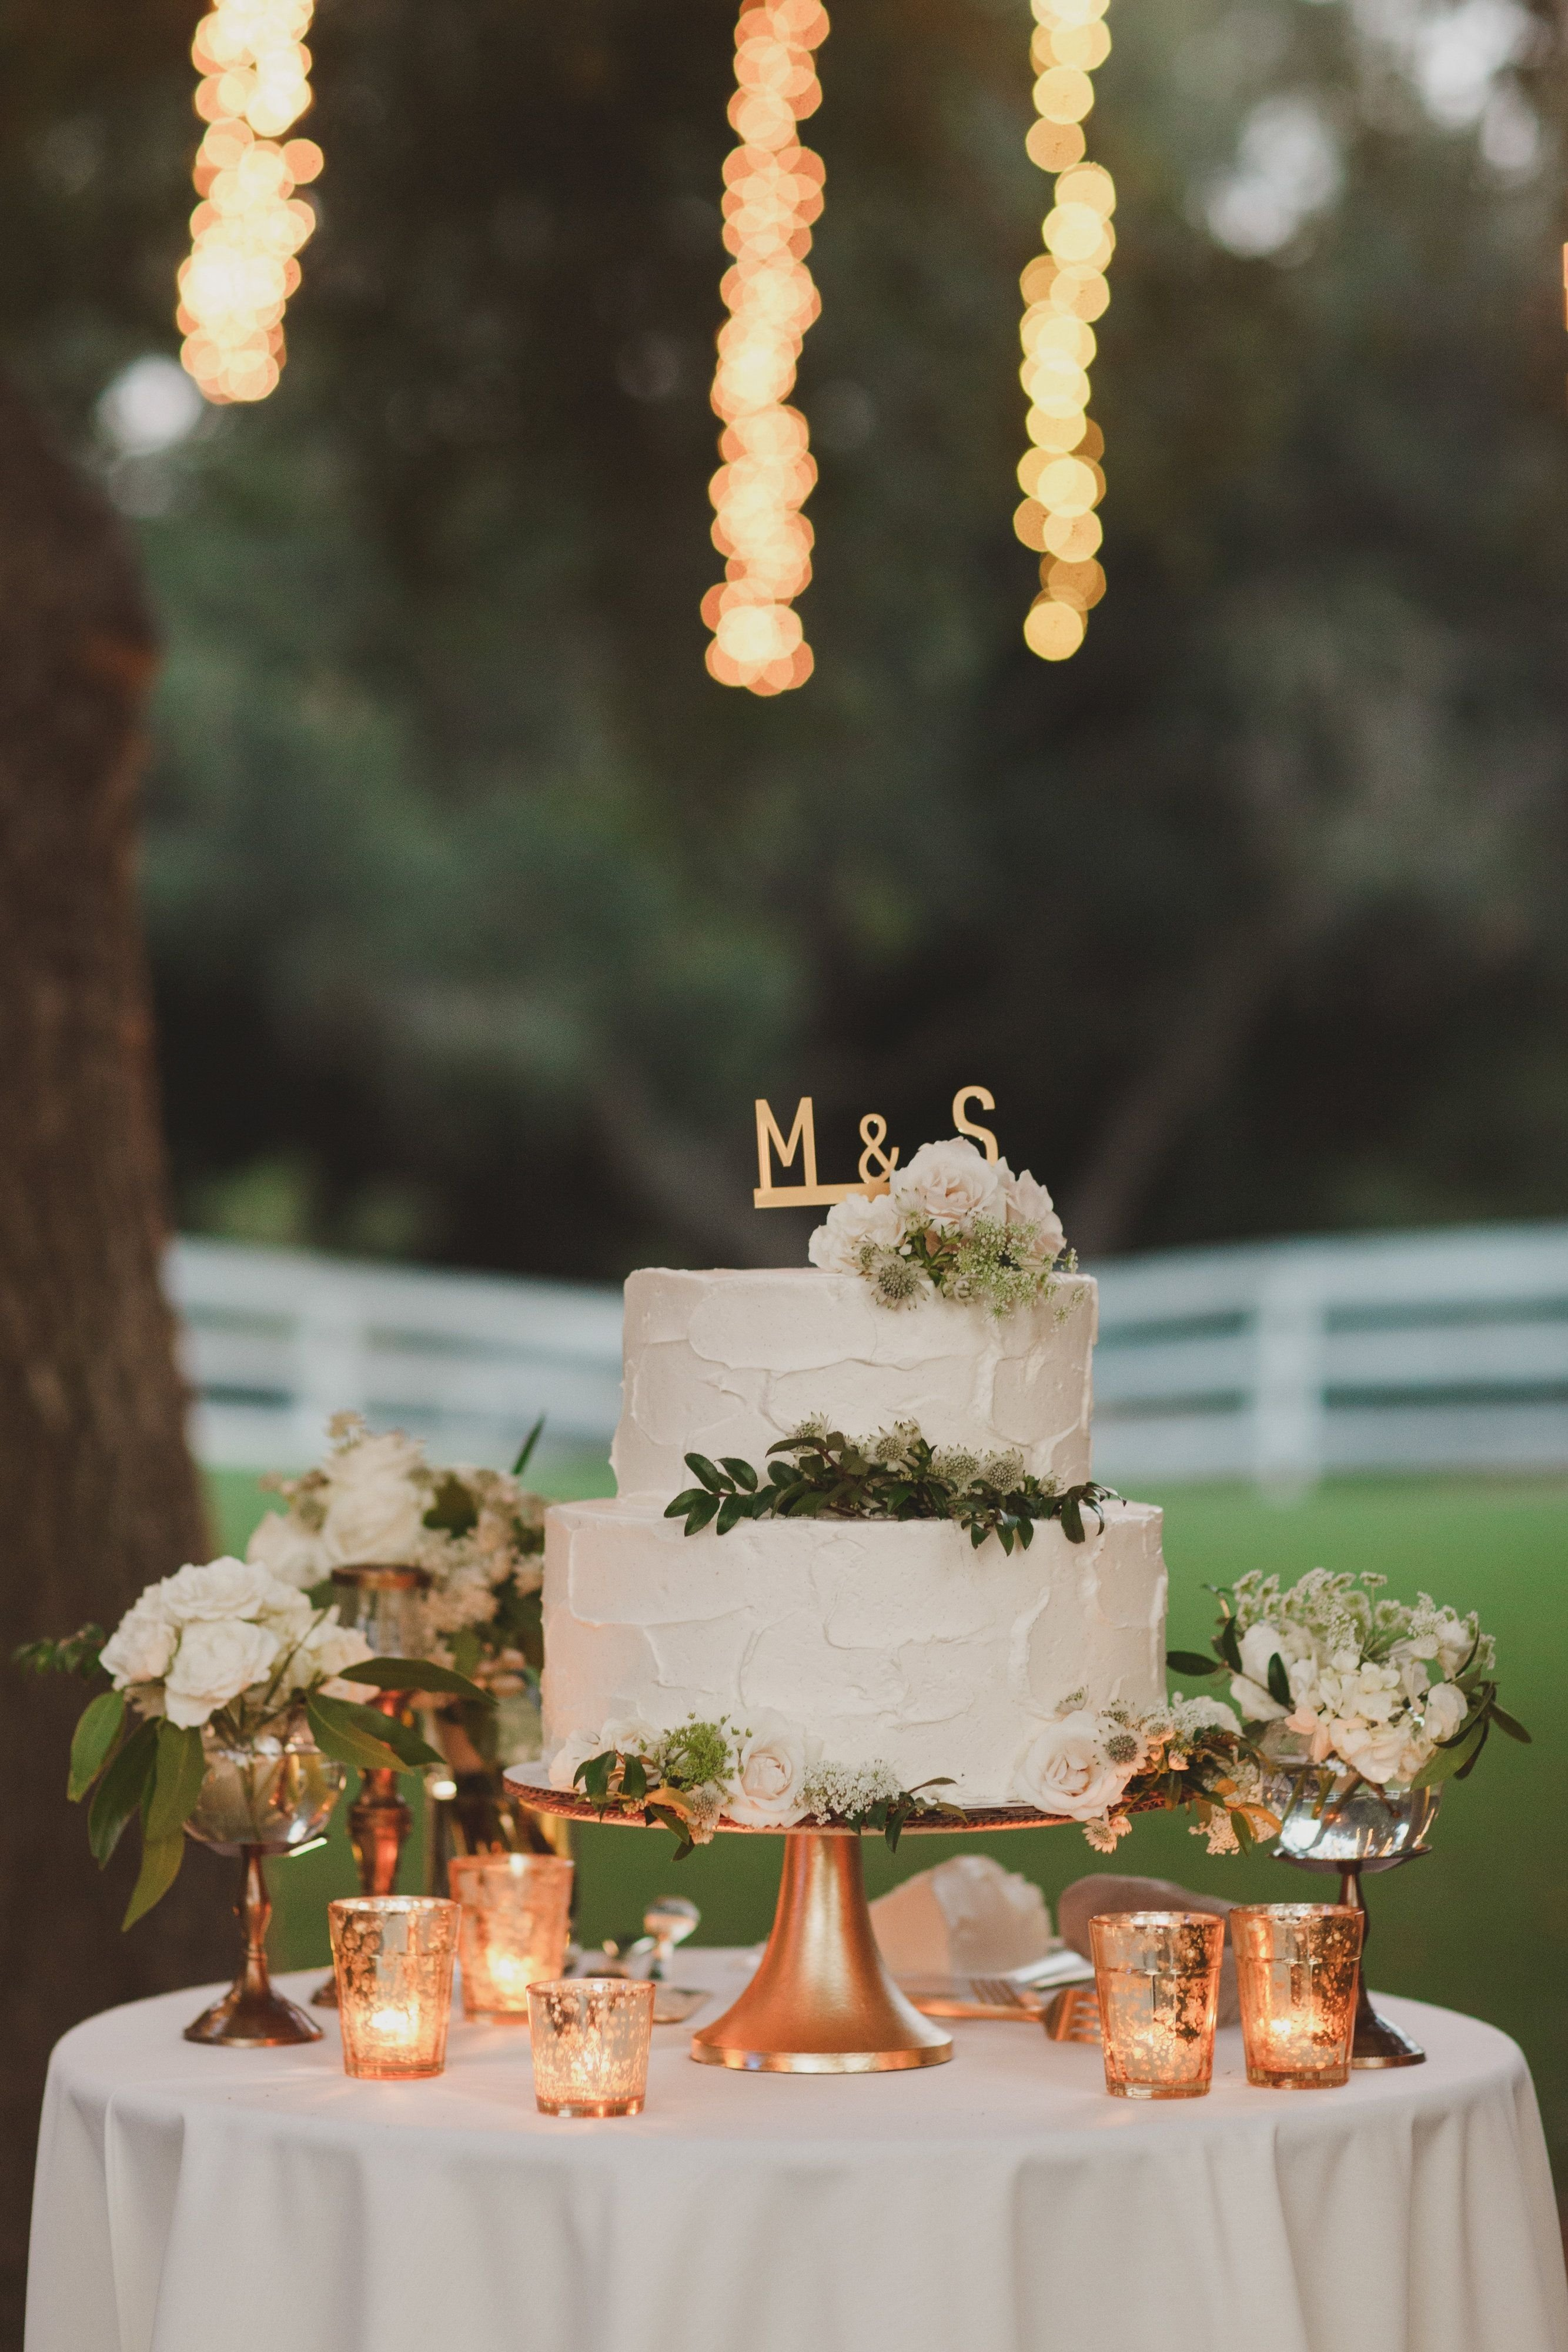 10 Trendy Dessert Table Ideas For Wedding simply tasteful wedding white wedding cakes wedding cake and cake 2020